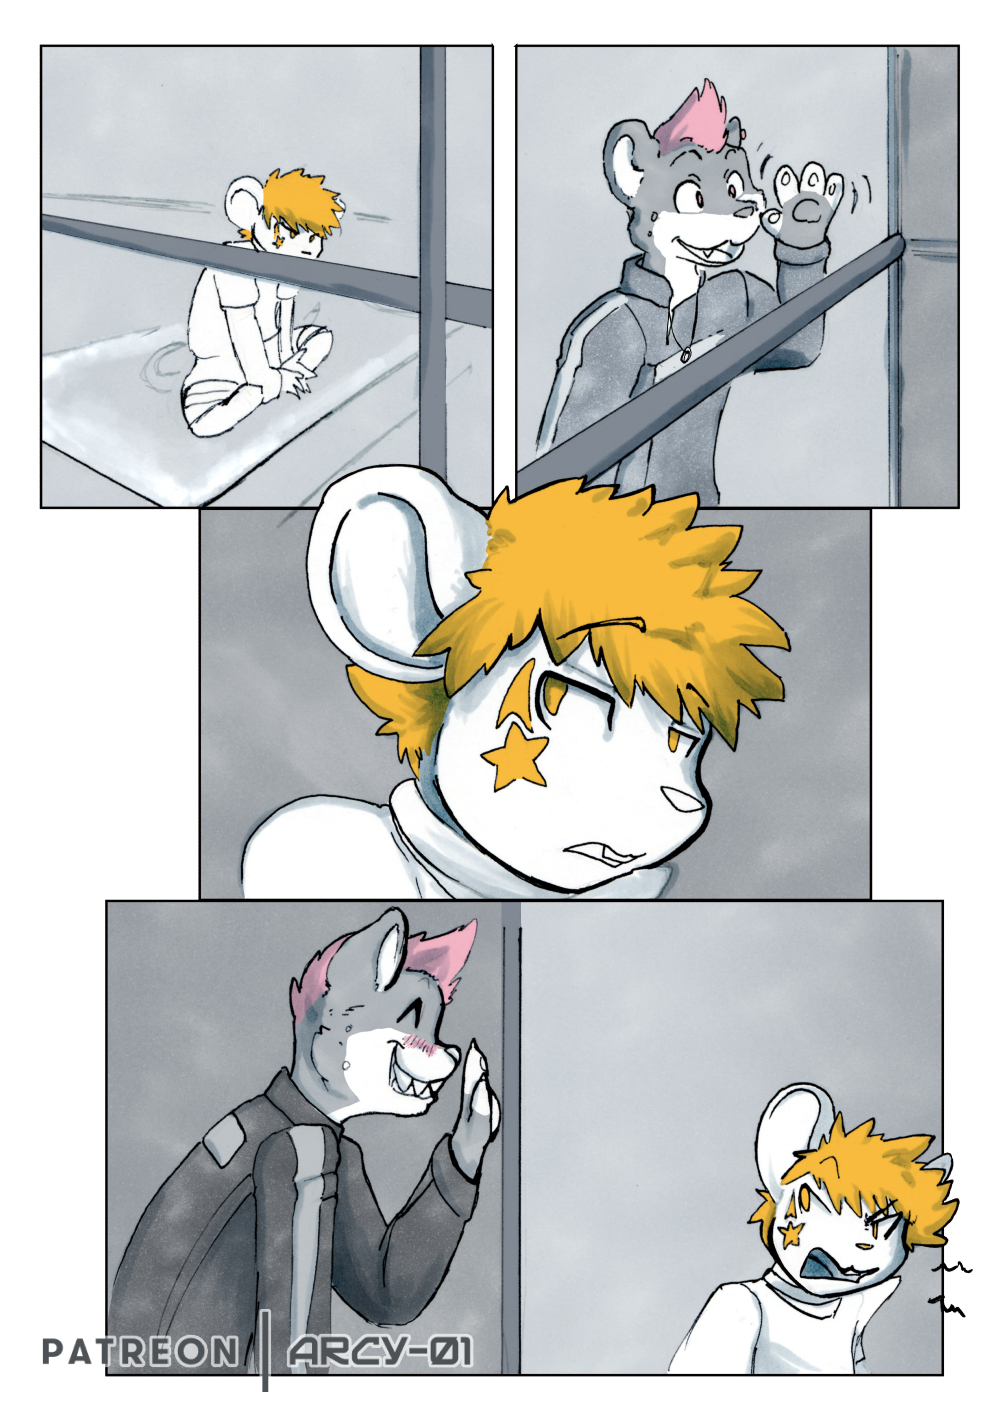 ARCY-01 page 117